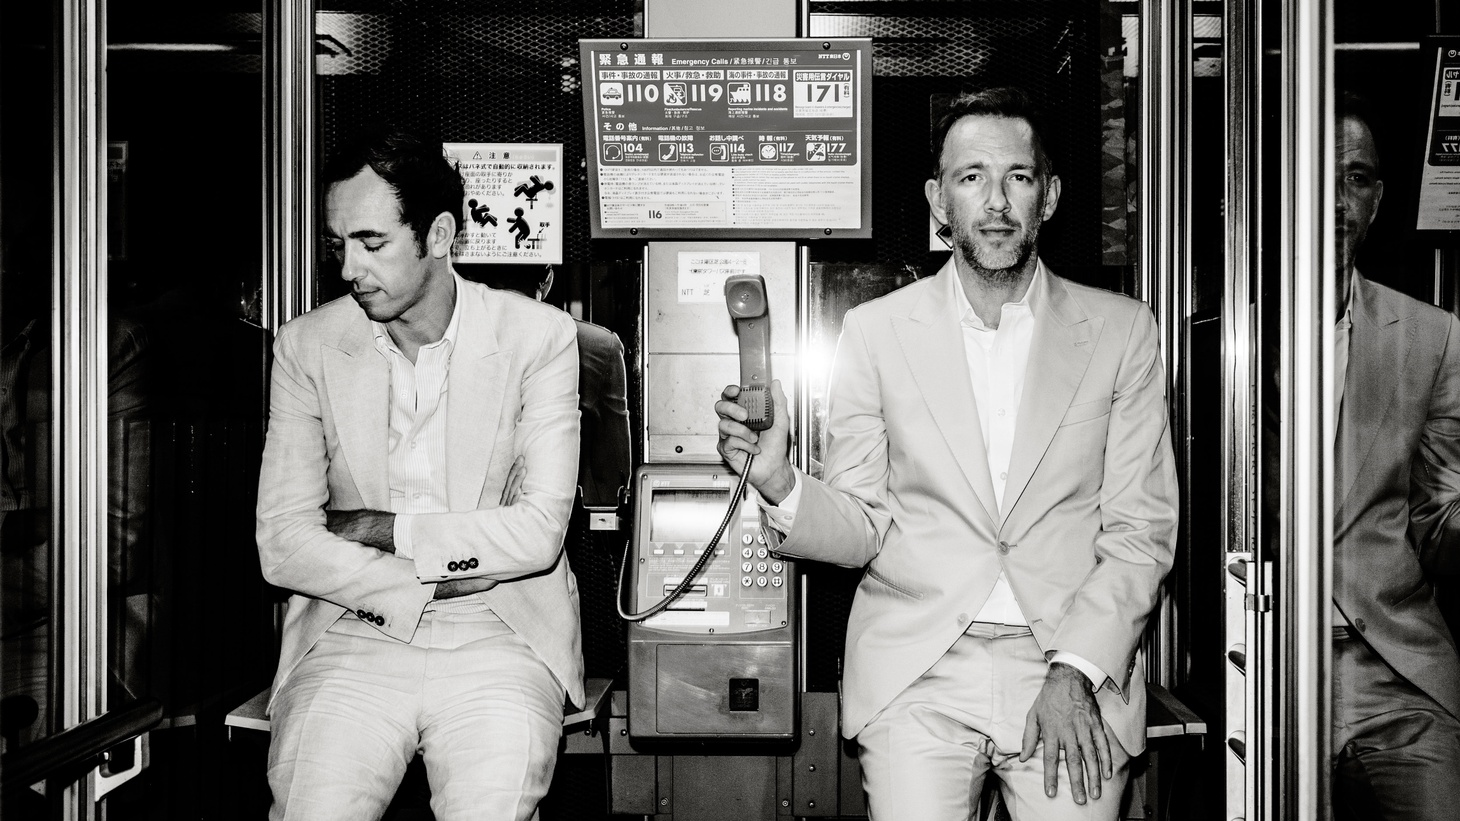 Brothers David Dewaele and Stephen Dewaele have found their own fame on record and in clubs as Soulwax, and as their alter-ego 2manydjs. Their mixes are legendary and we're thrilled to present an exclusive one crafted for Metropolis.